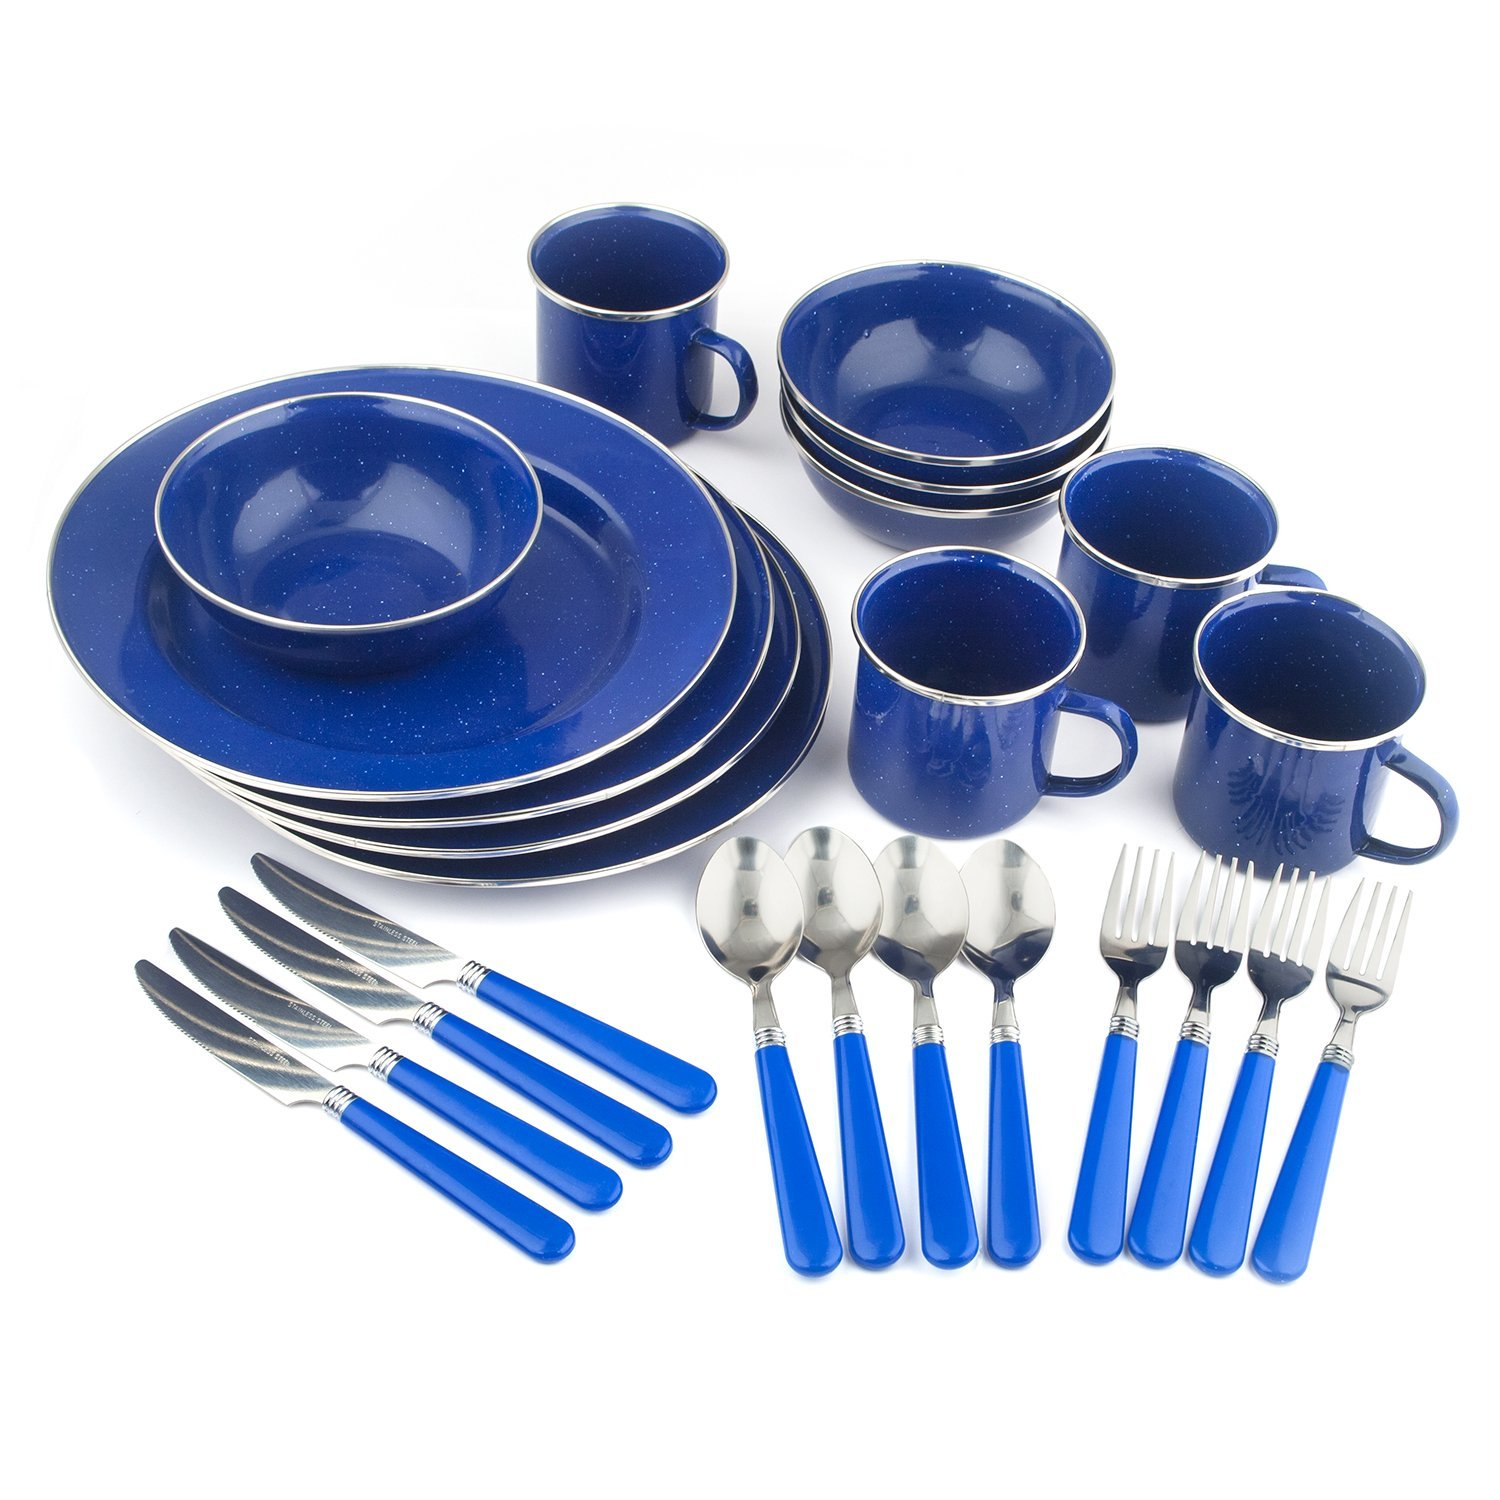 Enamel Camping Tableware Set, 24-Piece, Blue, High quality durable 24-piece steel tableware set with blue enamel finish By Stansport